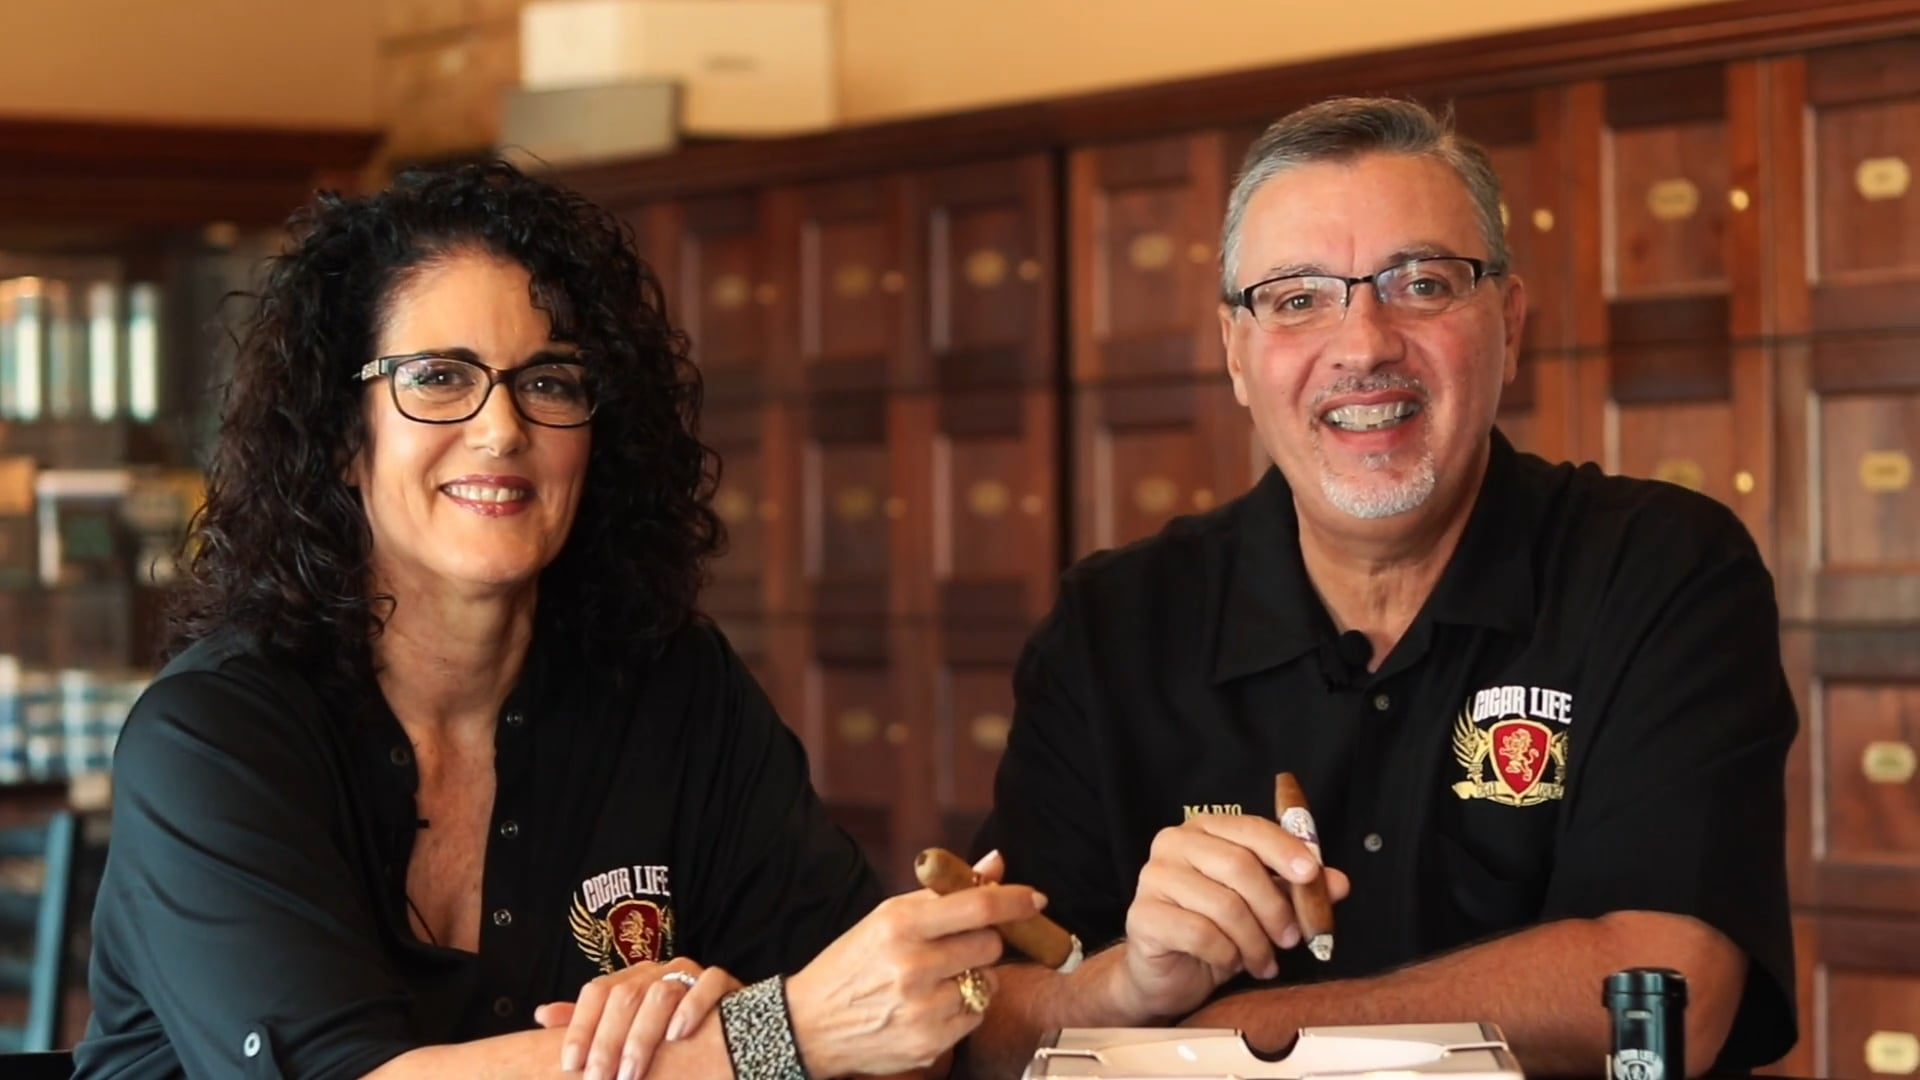 Mario and Patty from Cigar Life